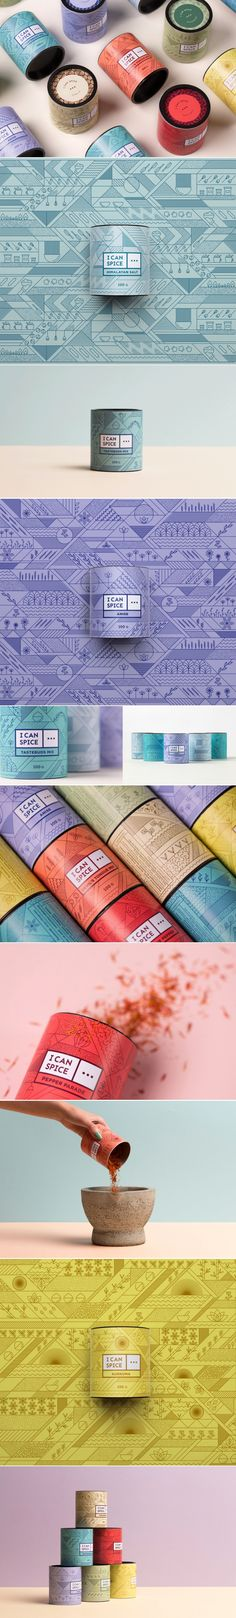 This Colorful Spice Brand Wants to Encourage Everyone to Take Up Cooking — The Dieline | Packaging & Branding Design & Innovation News